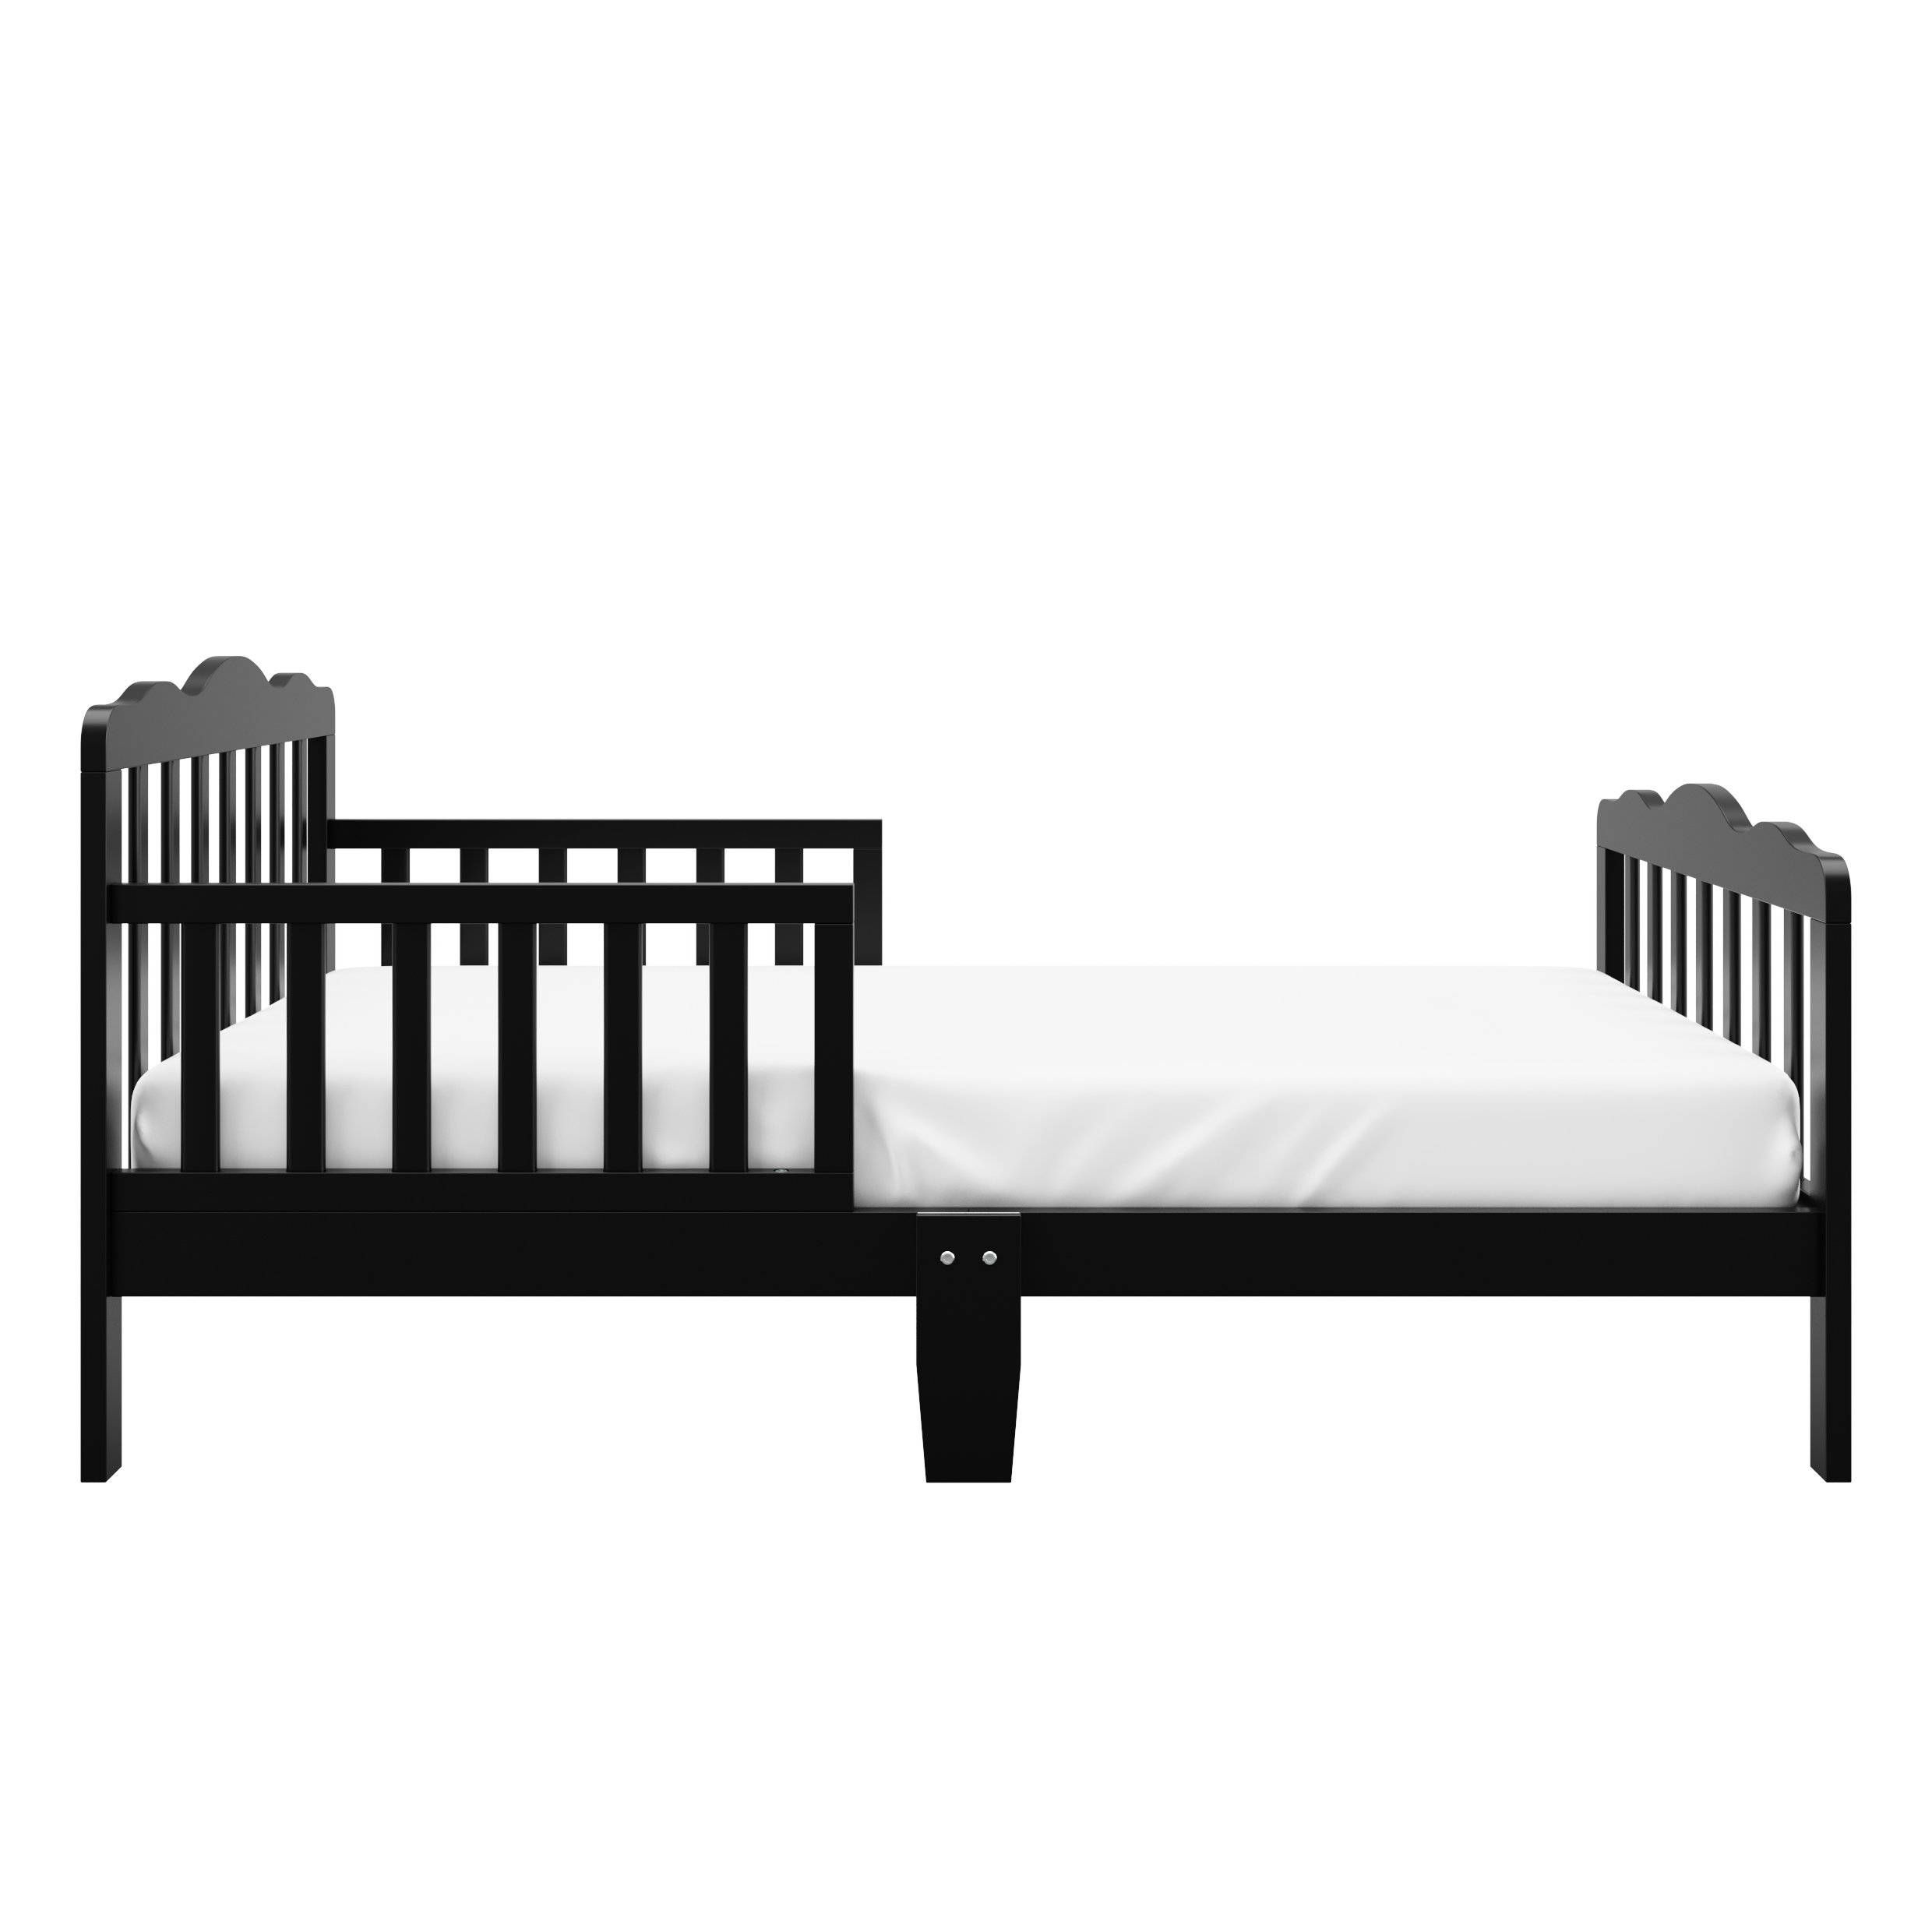 Storkcraft Hillside Toddler Bed Black, Fits Standard-Size Toddler Mattress (Not Included), Guardrails on Both Sides, Meets or Exceeds All Federal Safety Standards, Pine & Composite Construction by Stork Craft (Image #3)